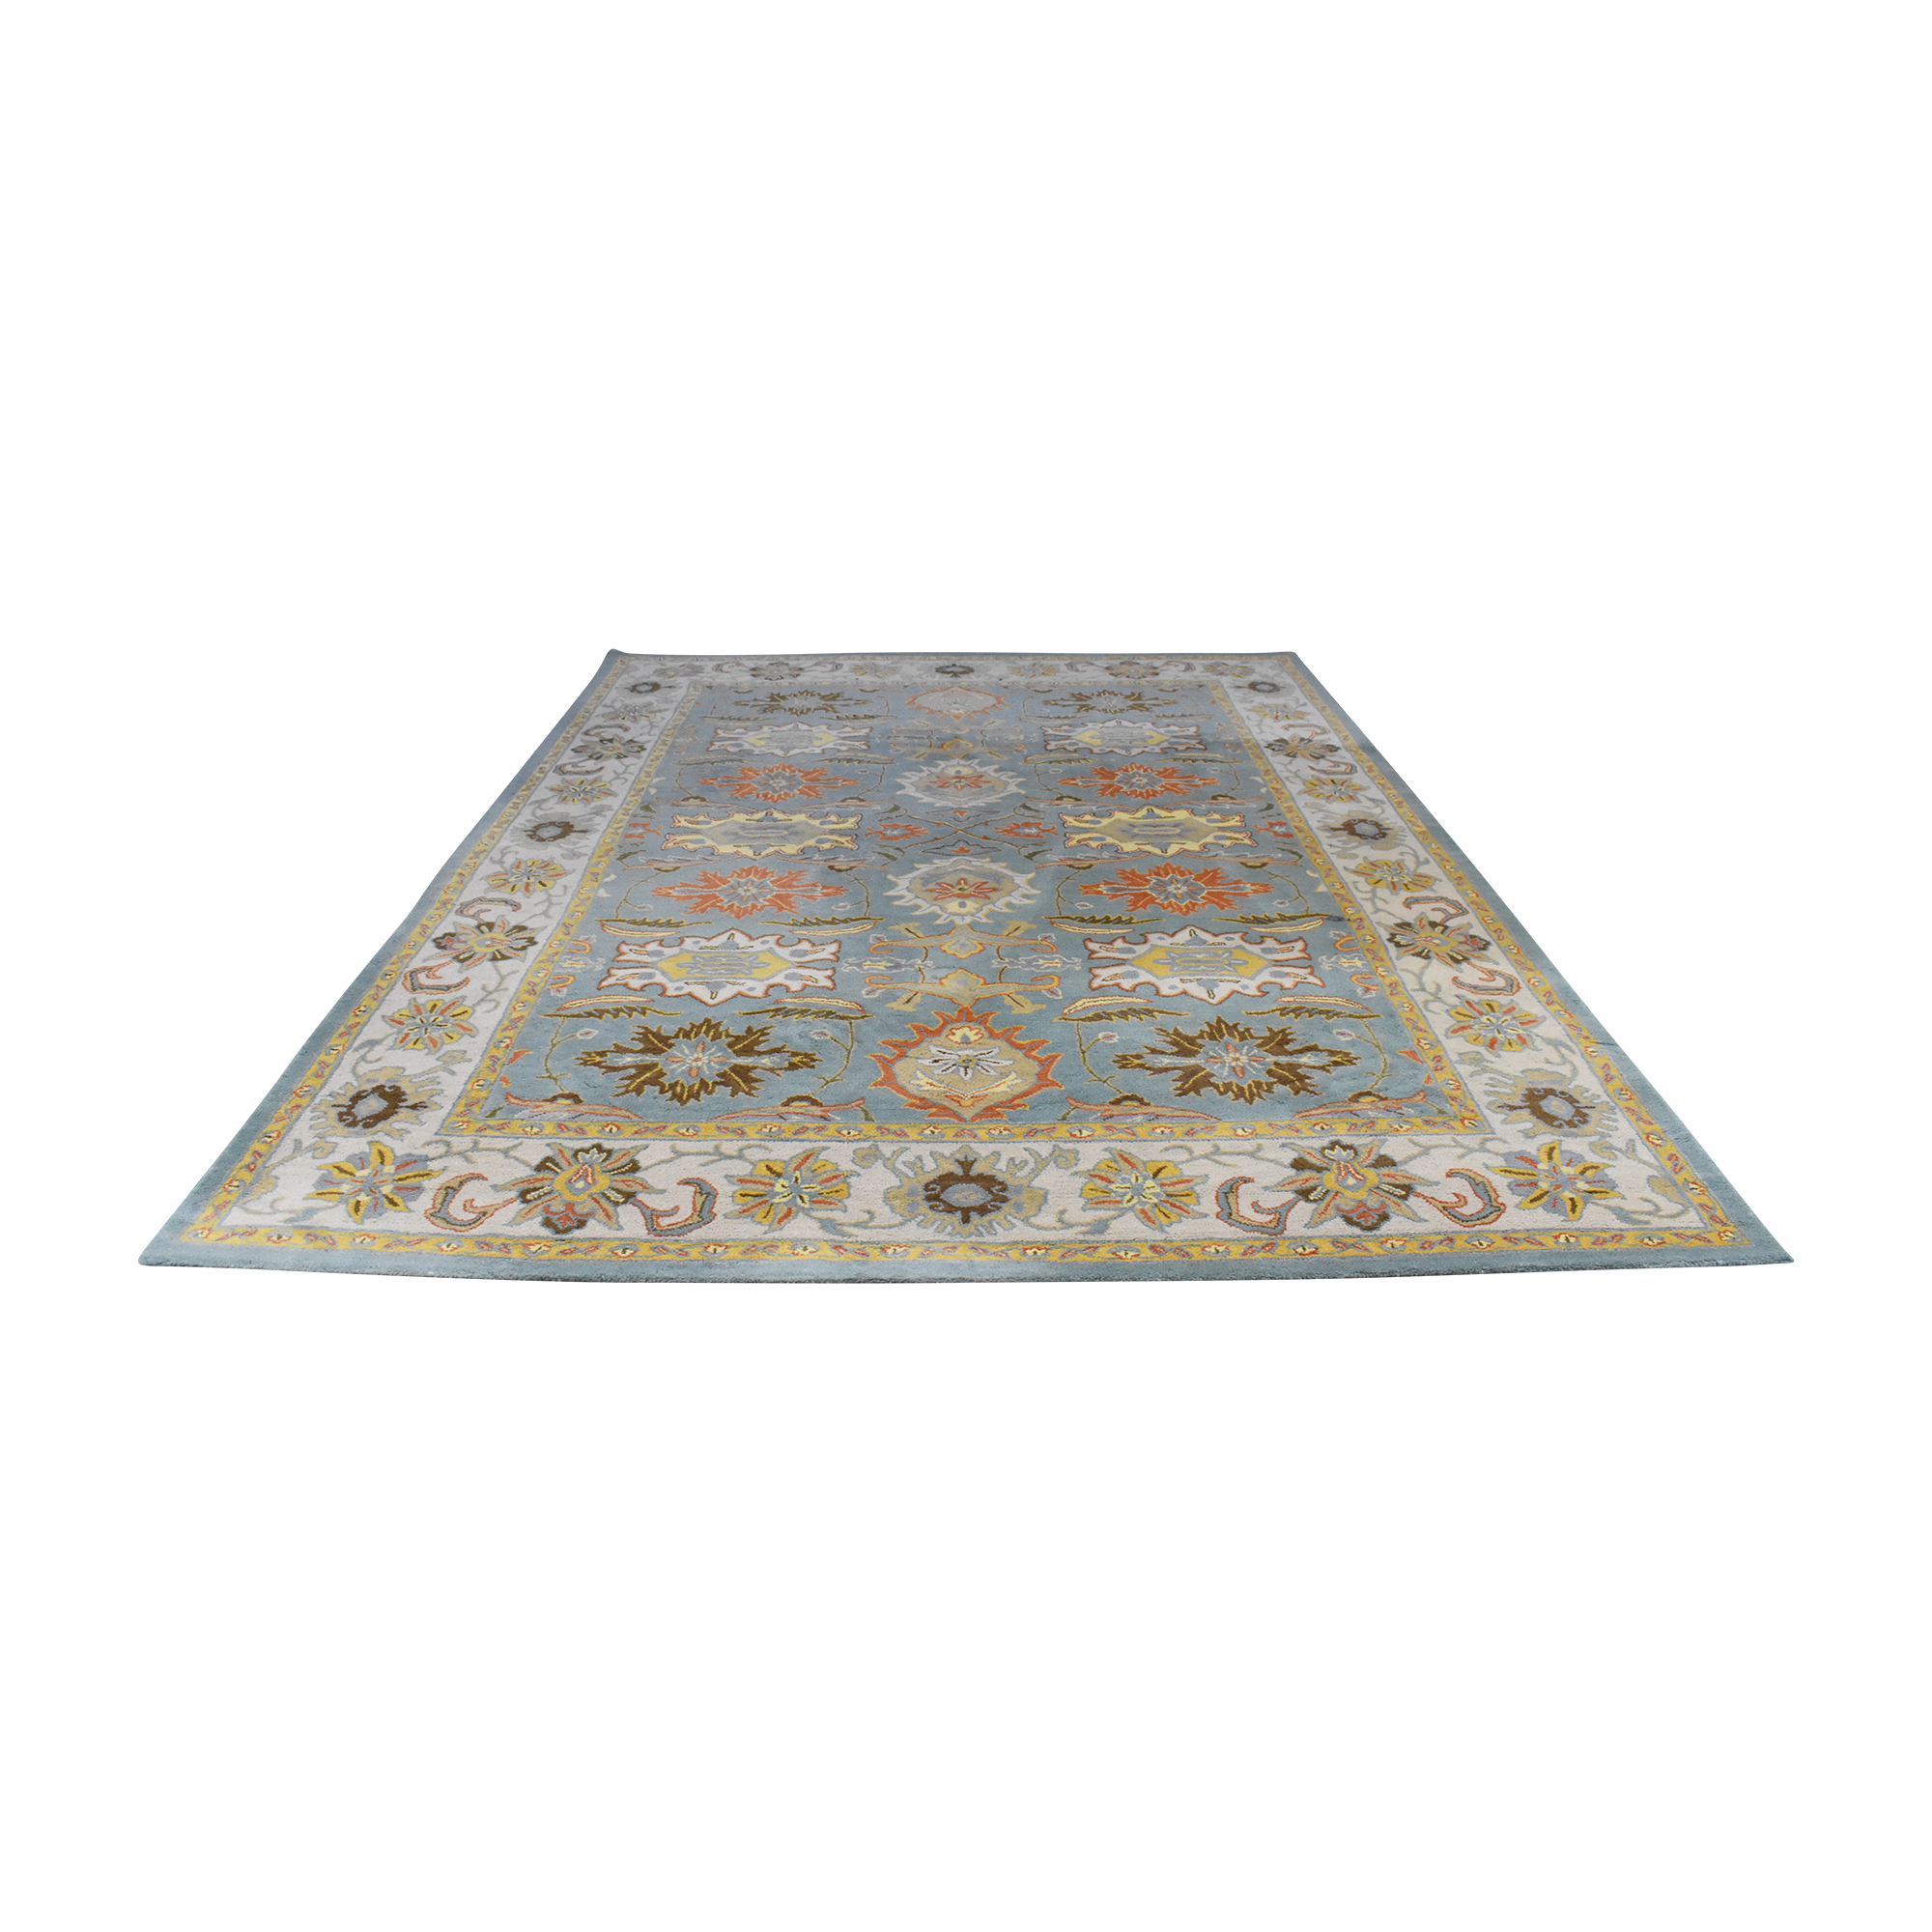 Safavieh Safavieh Heritage Collection Area Rug discount